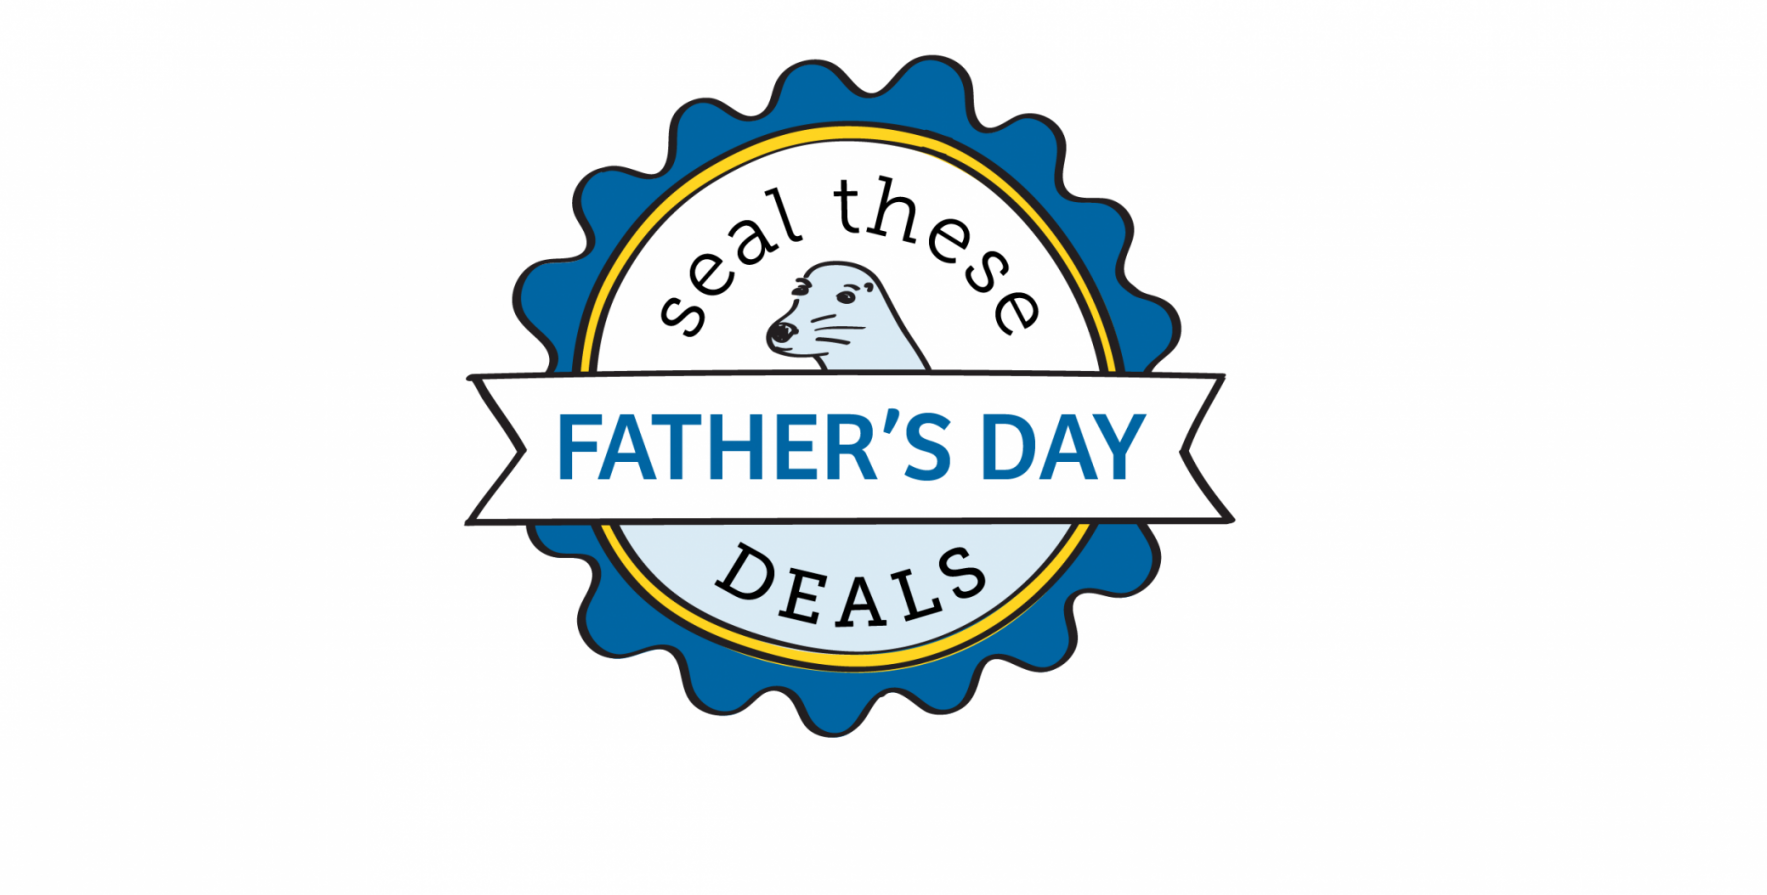 Seal These Deals: Father's Day Coupons and Deals!